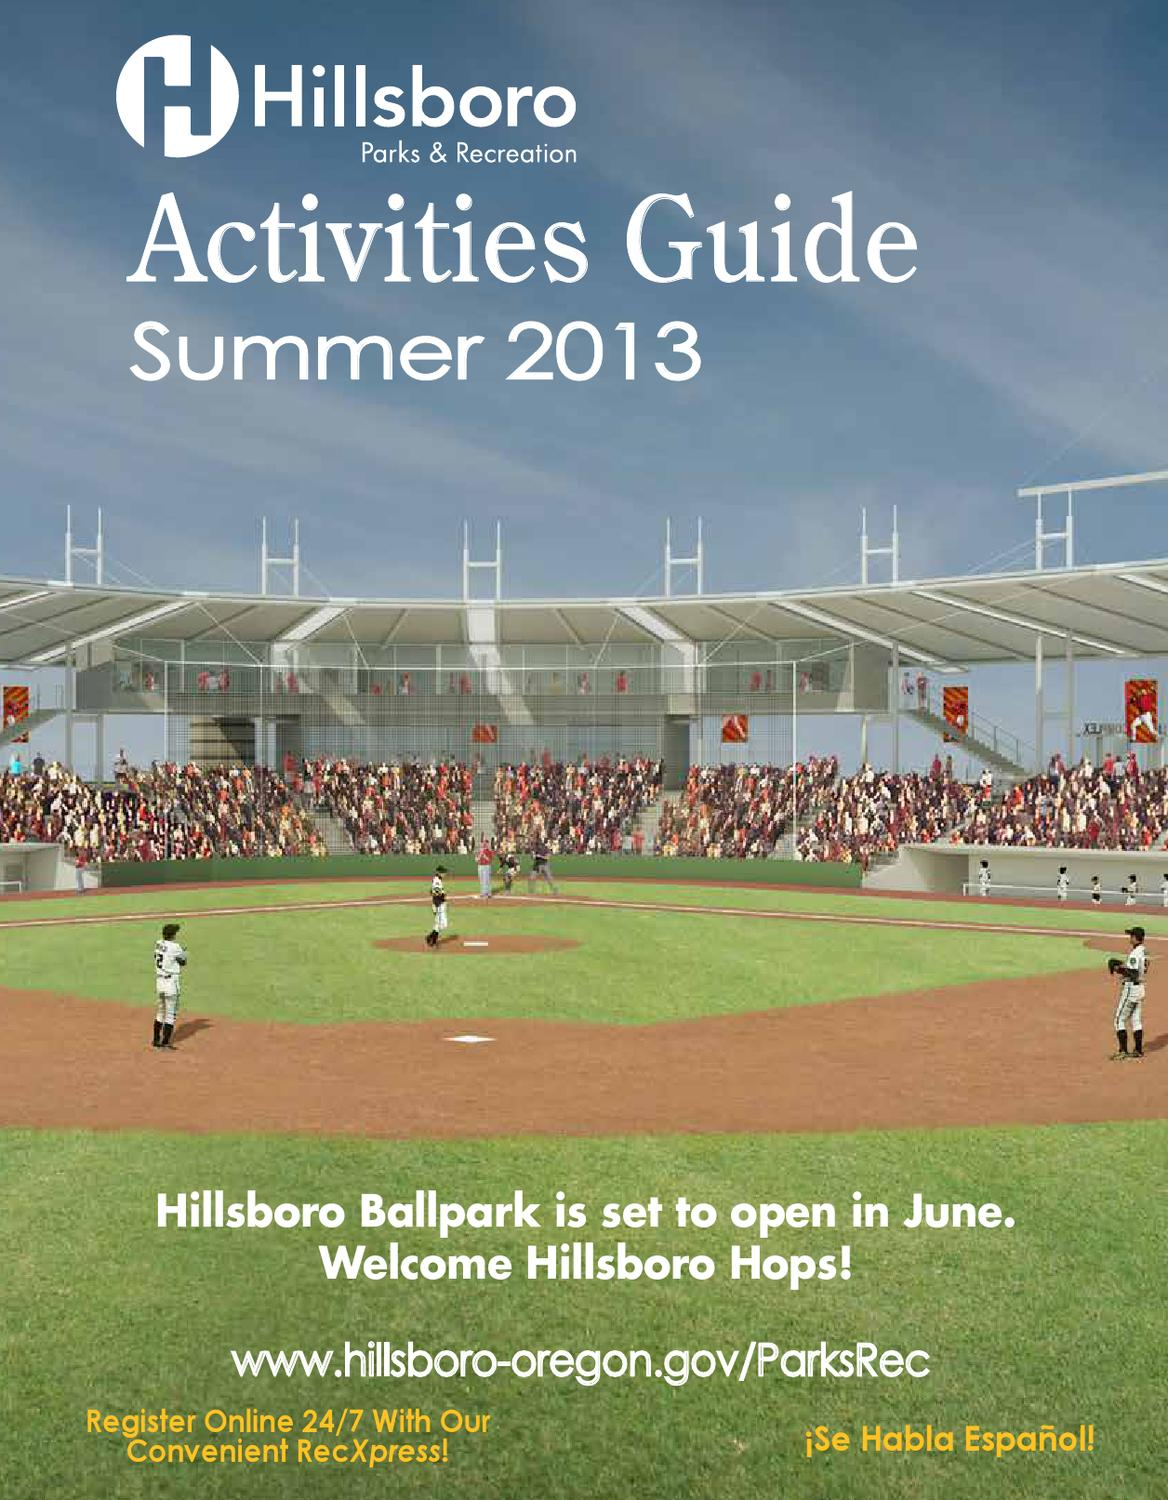 Hillsboro Parks & Recreation Summer 2013 Activities Guide by